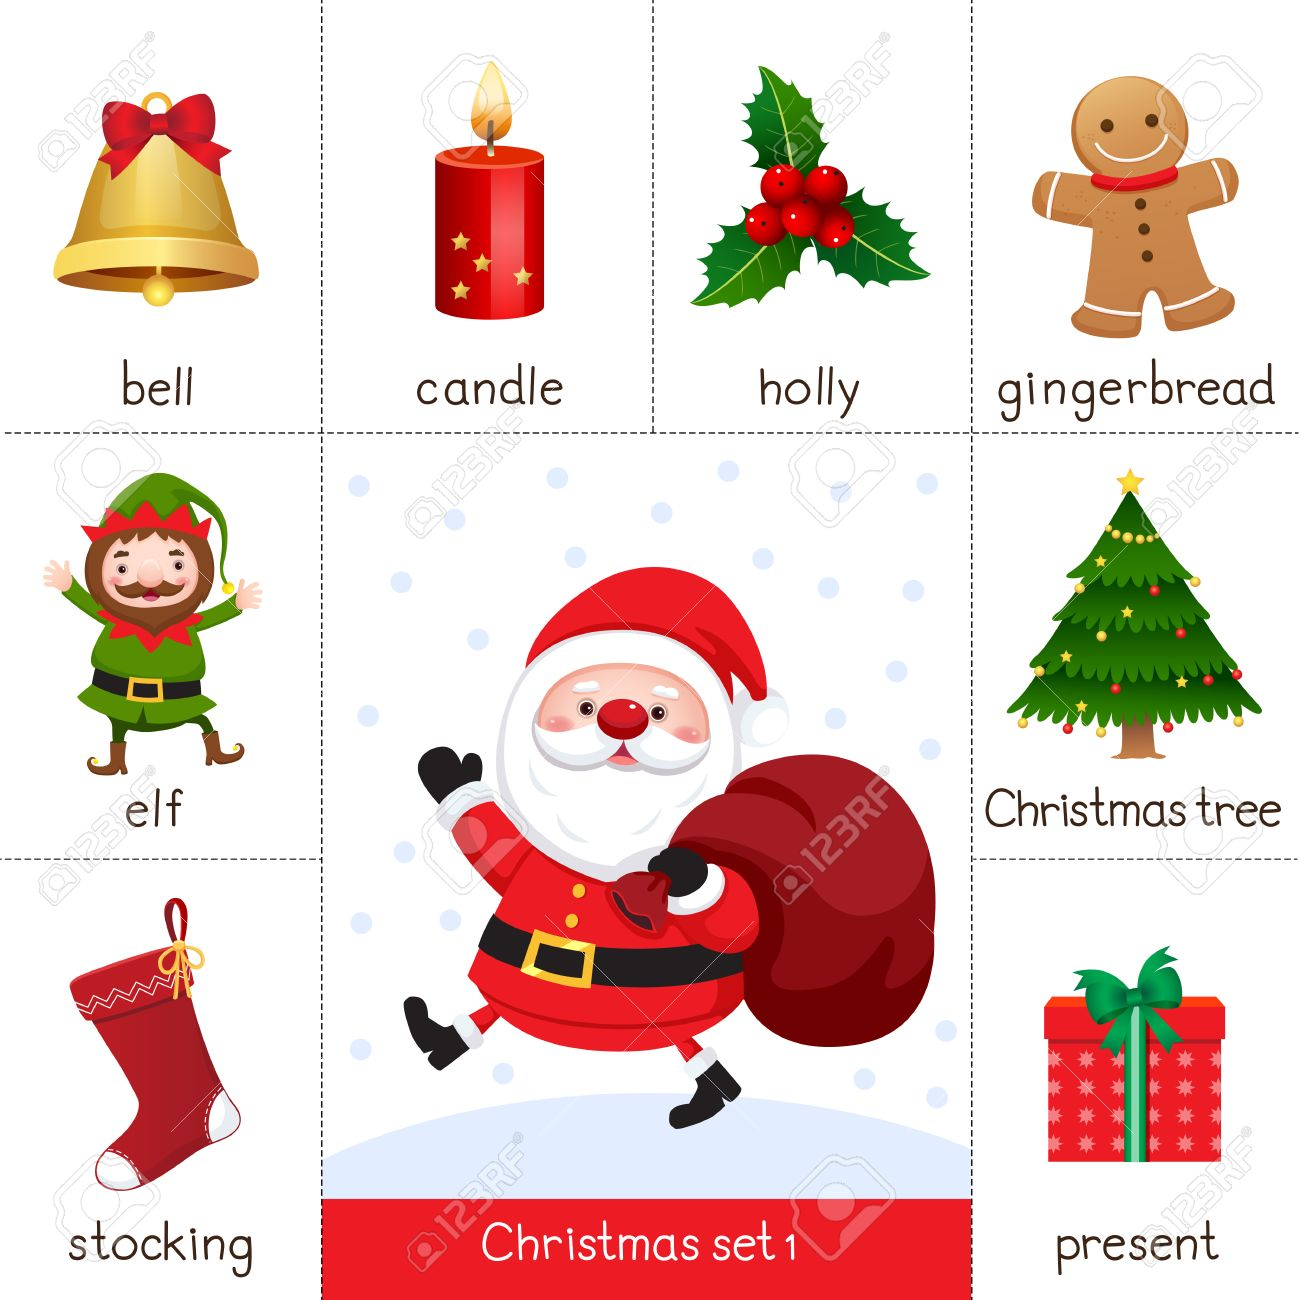 Illustration Of Printable Flash Card For Christmas Set And Santa